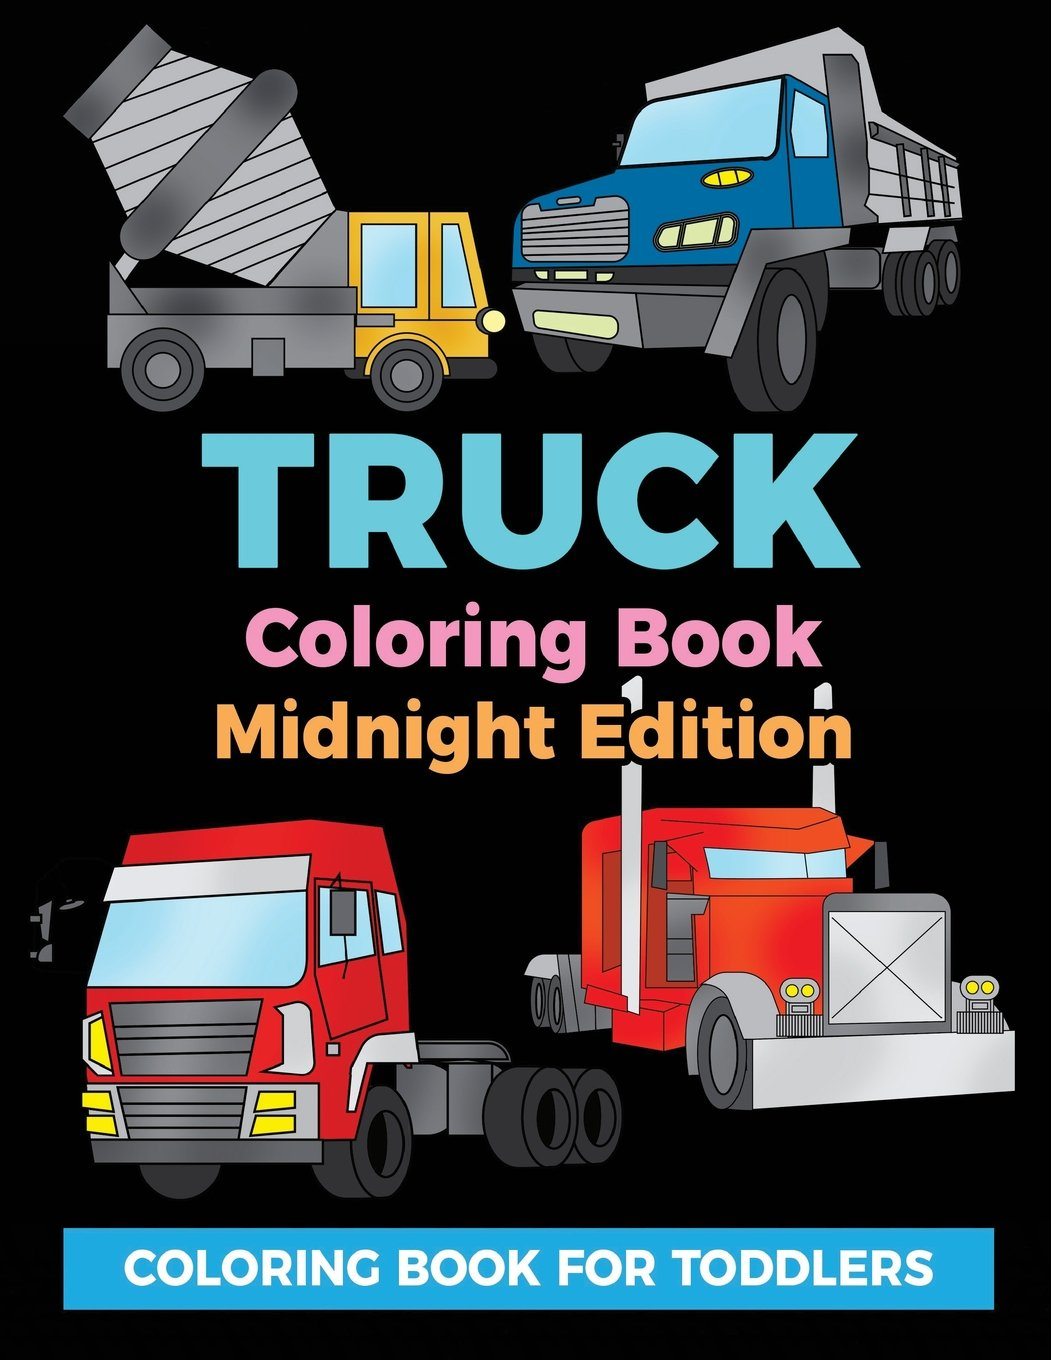 Truck Coloring Book Midnight Edition: Coloring Book for Toddlers: Easy to Color Construction Site Truck Activity Book for Preschooler, Kindergartener ... (truck books for toddler boys) (Volume 2) ebook